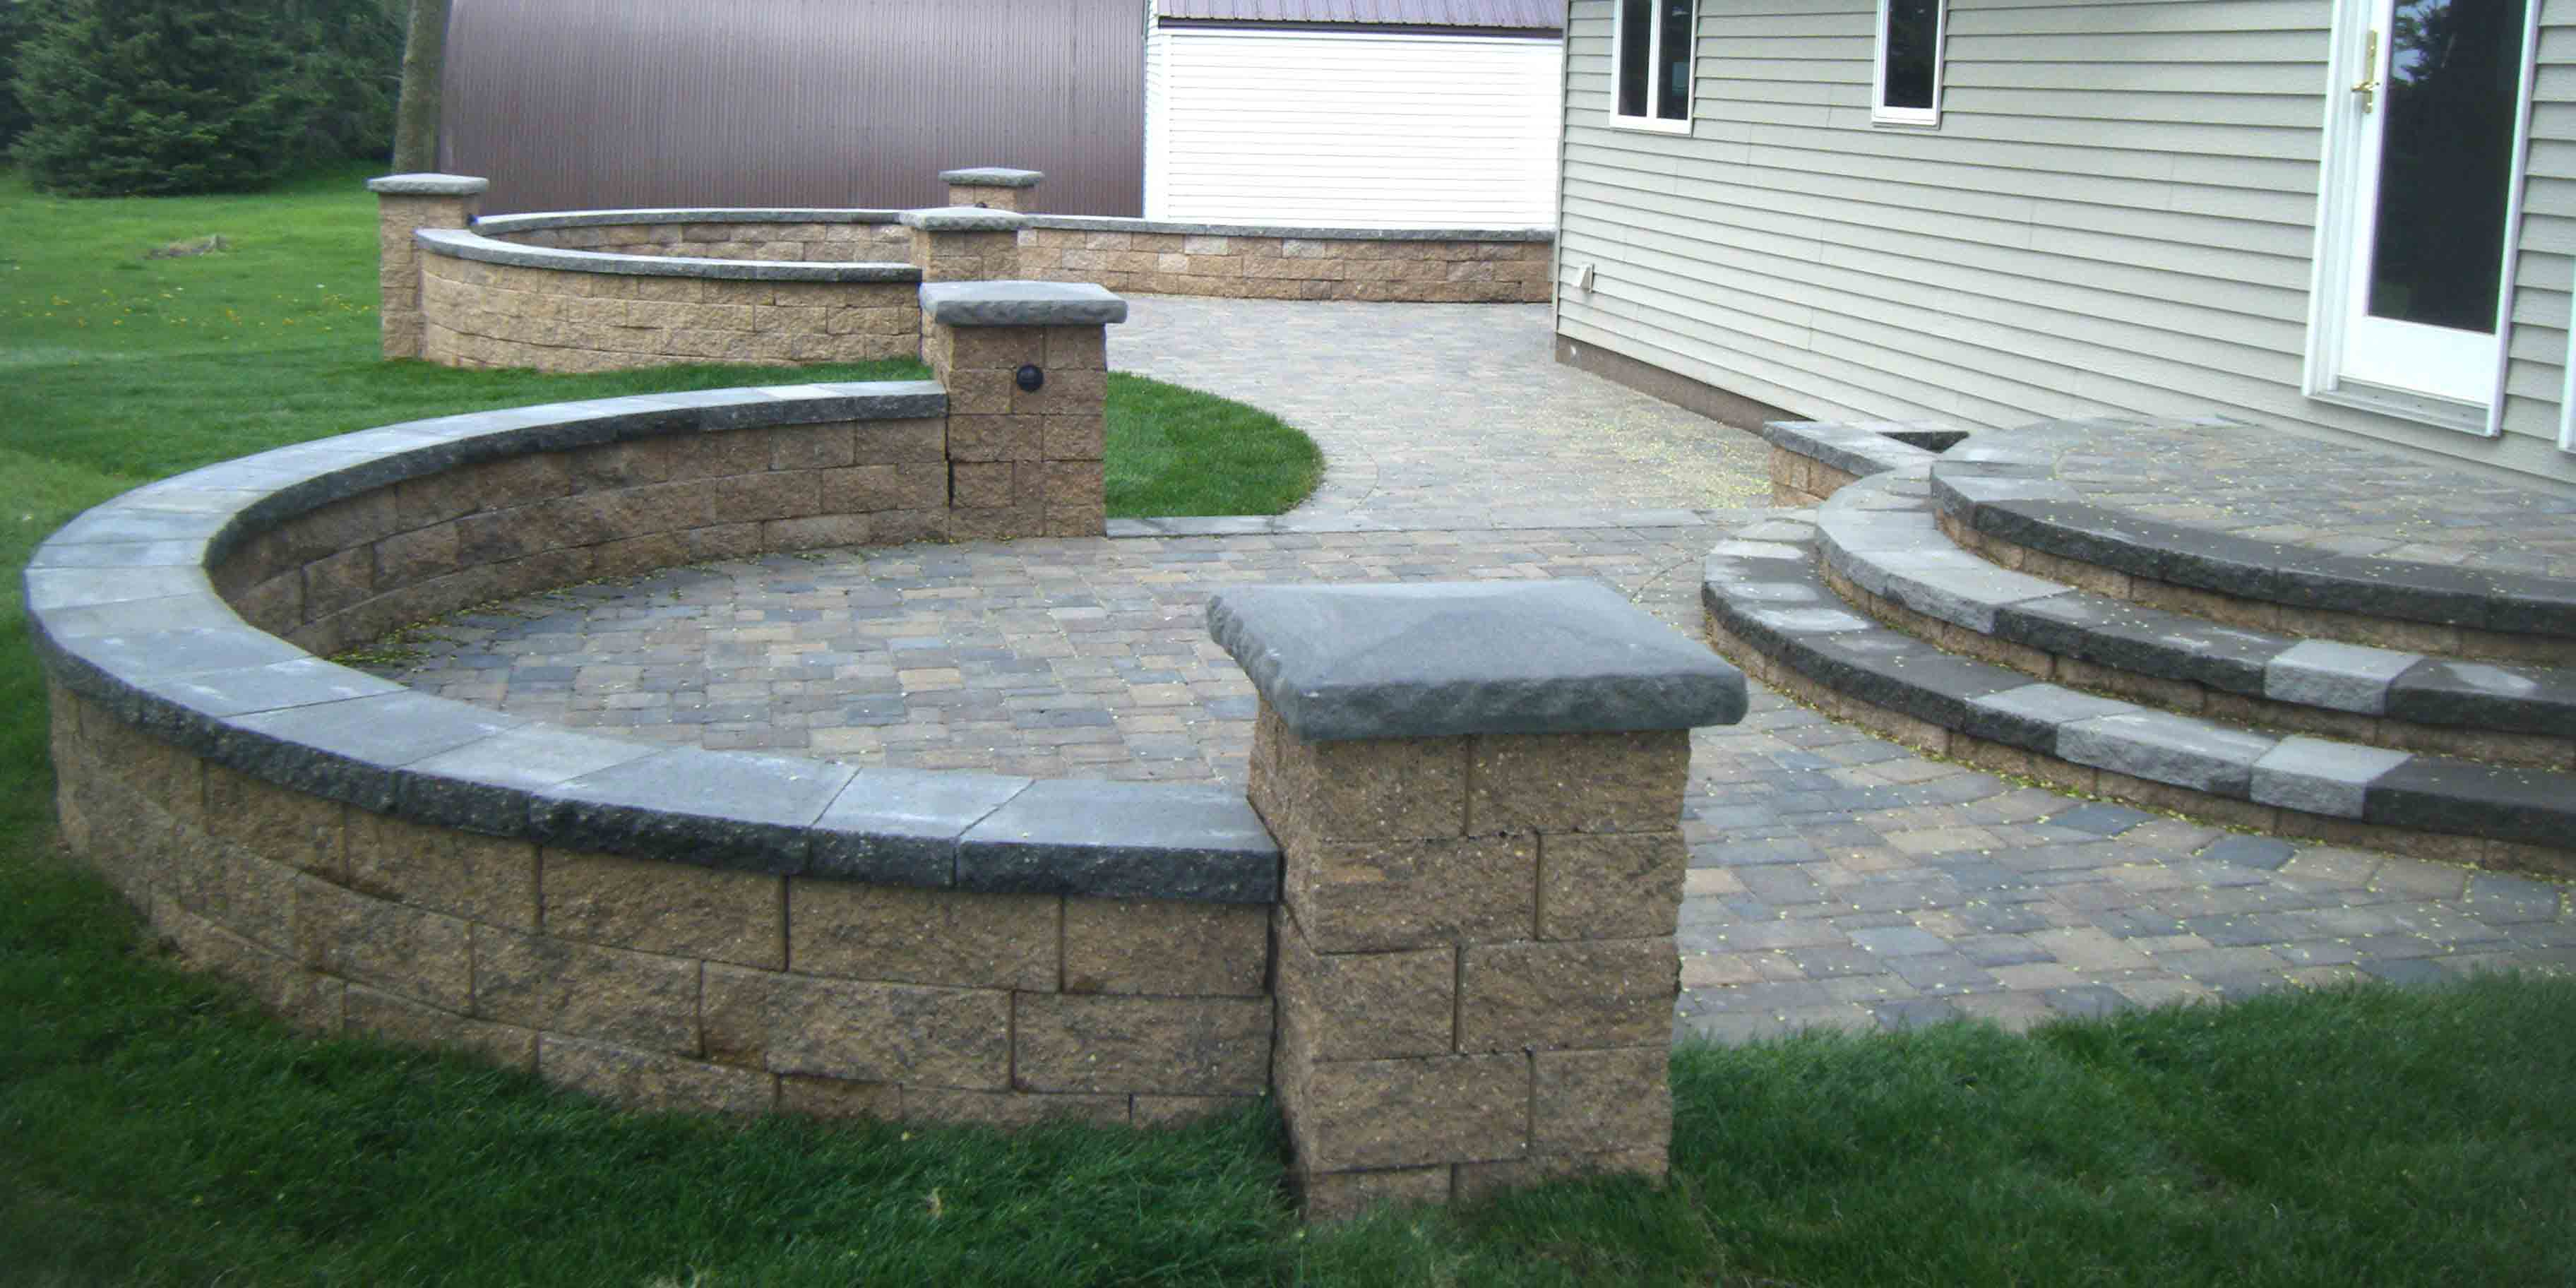 are landscapeideas ideas possibilities provide backyard landscaping patio pdf paver that sizes pattern avalable pavers several in different